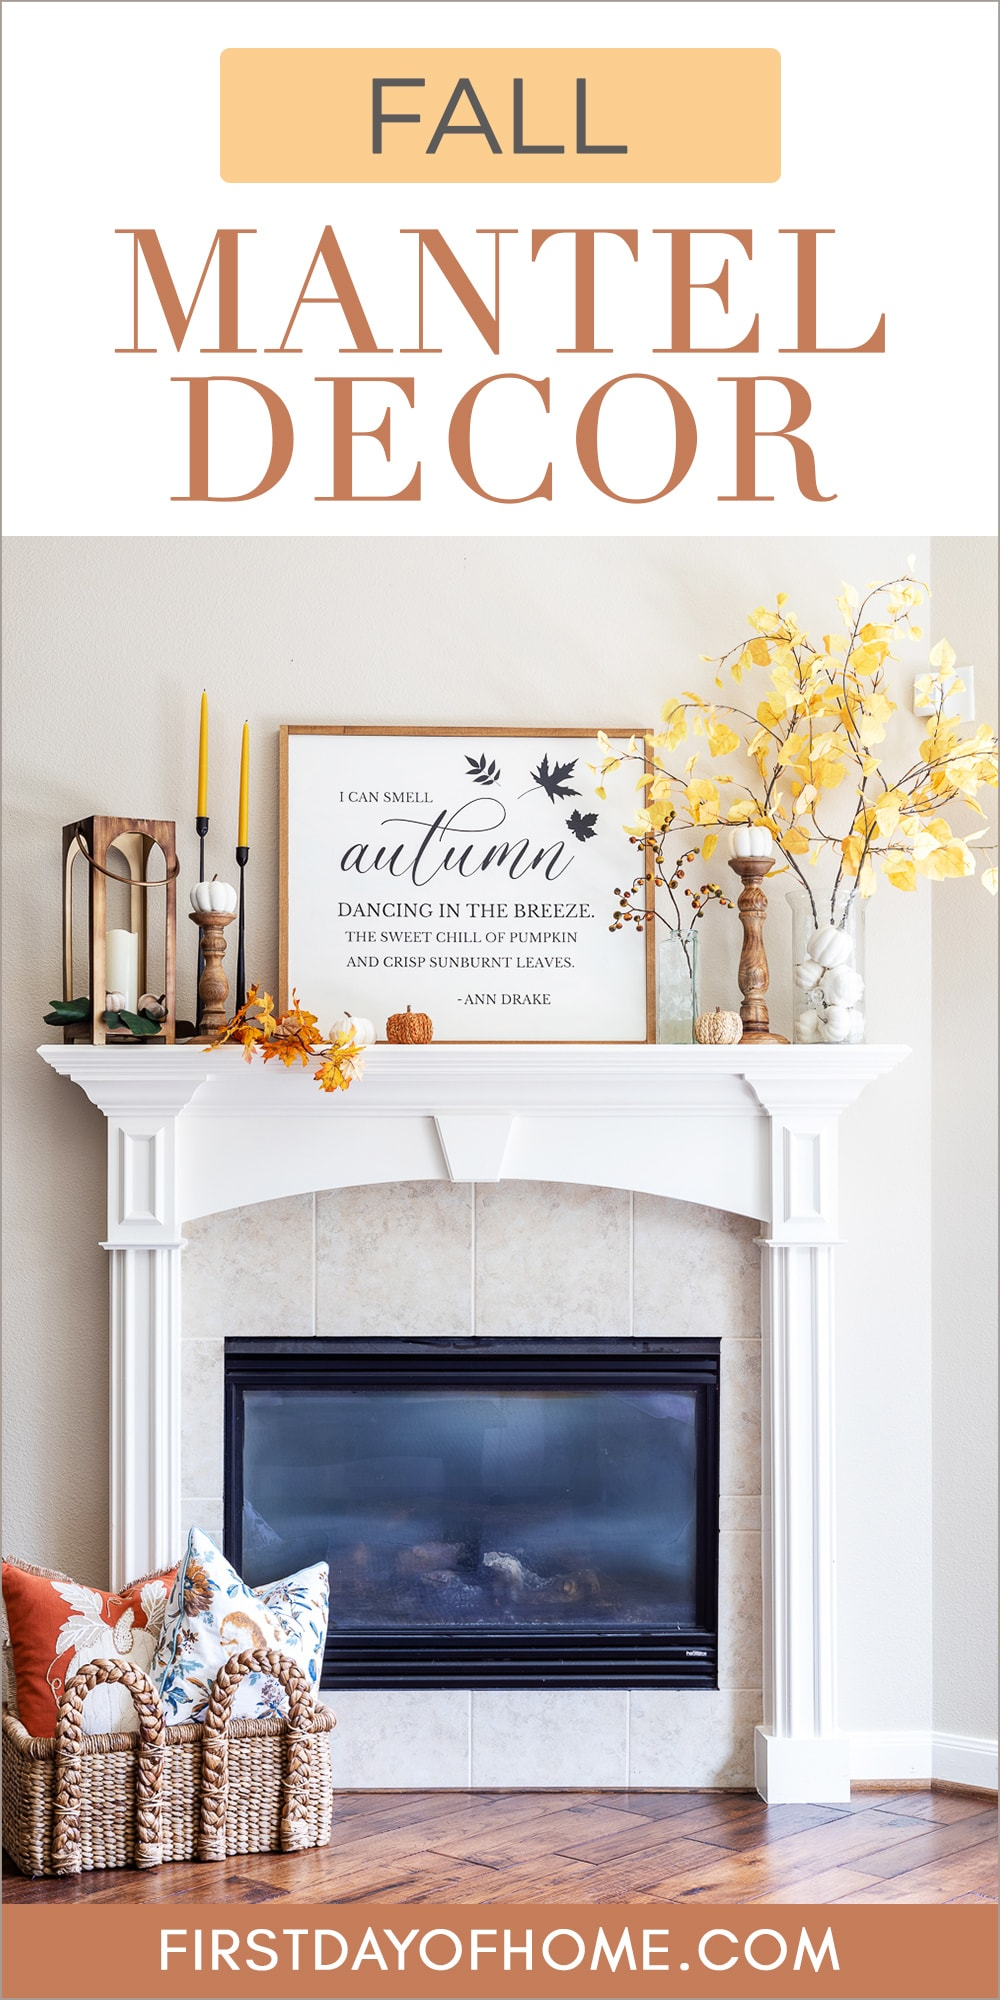 """Fall mantel decorations with faux aspen branches, pumpkins, and a fall farmhouse sign with text overlay reading """"Fall Mantel Decor"""""""